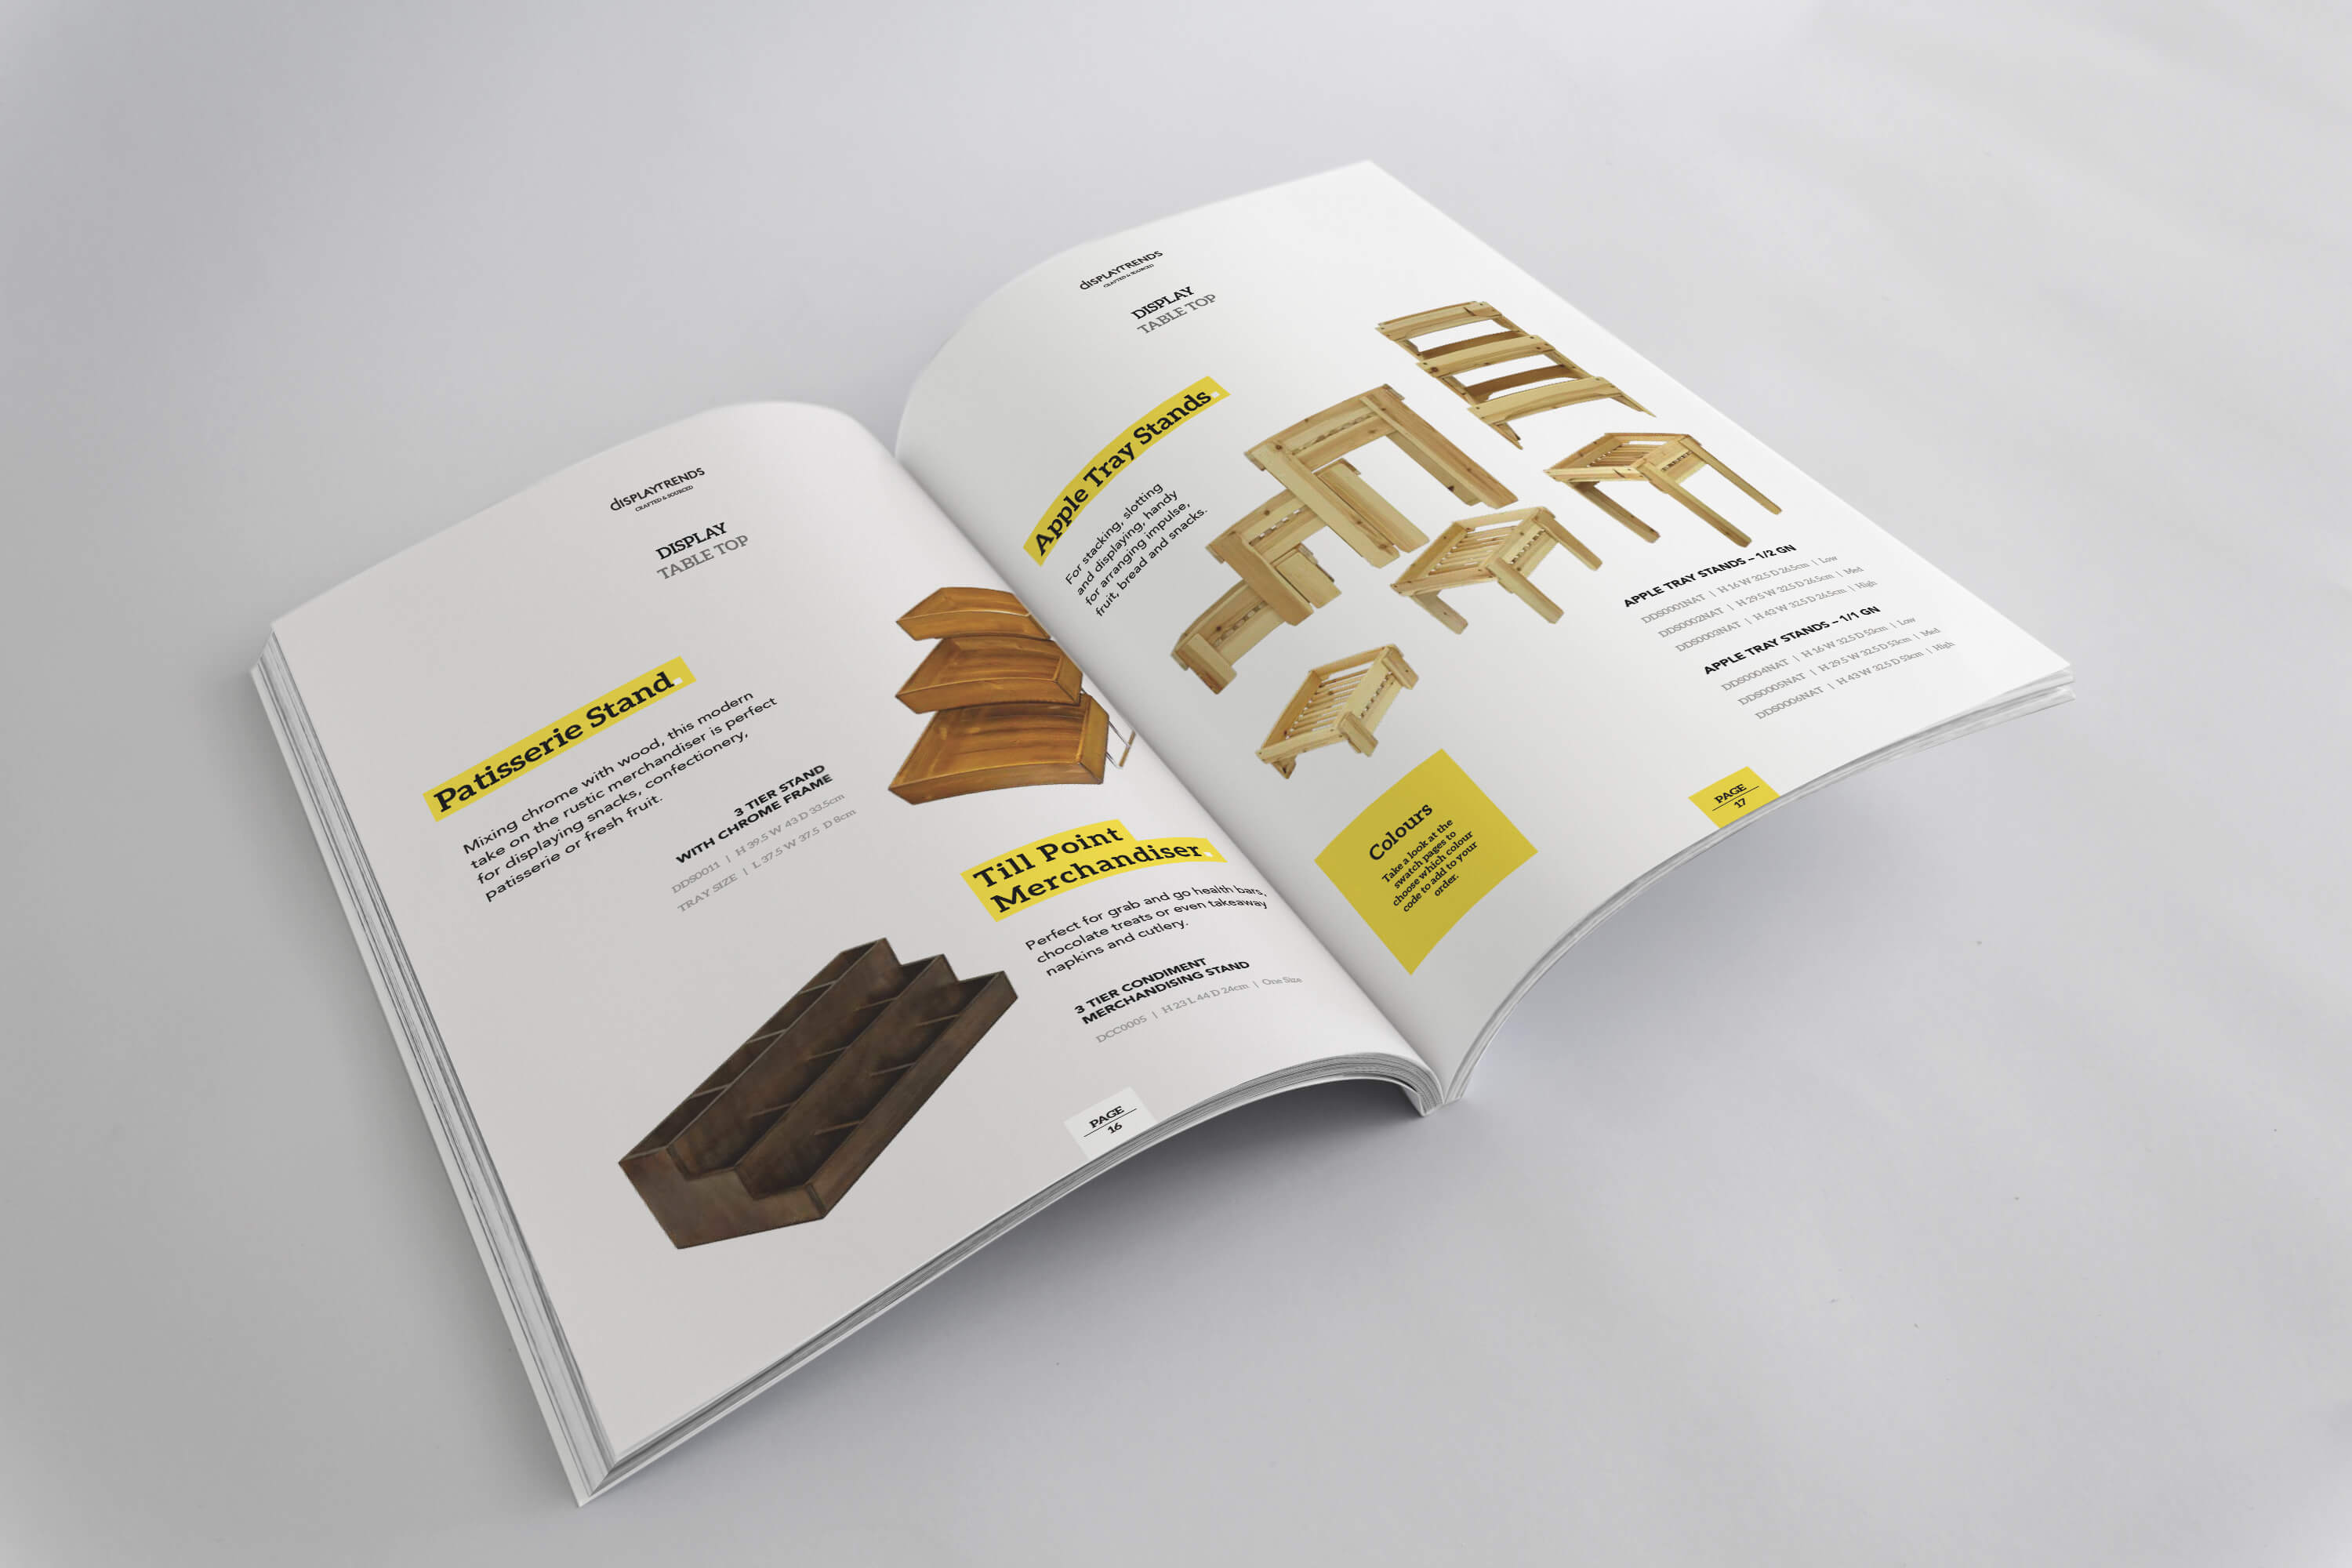 A open copy of the Display Trends catalogue showing the design of the internal pages